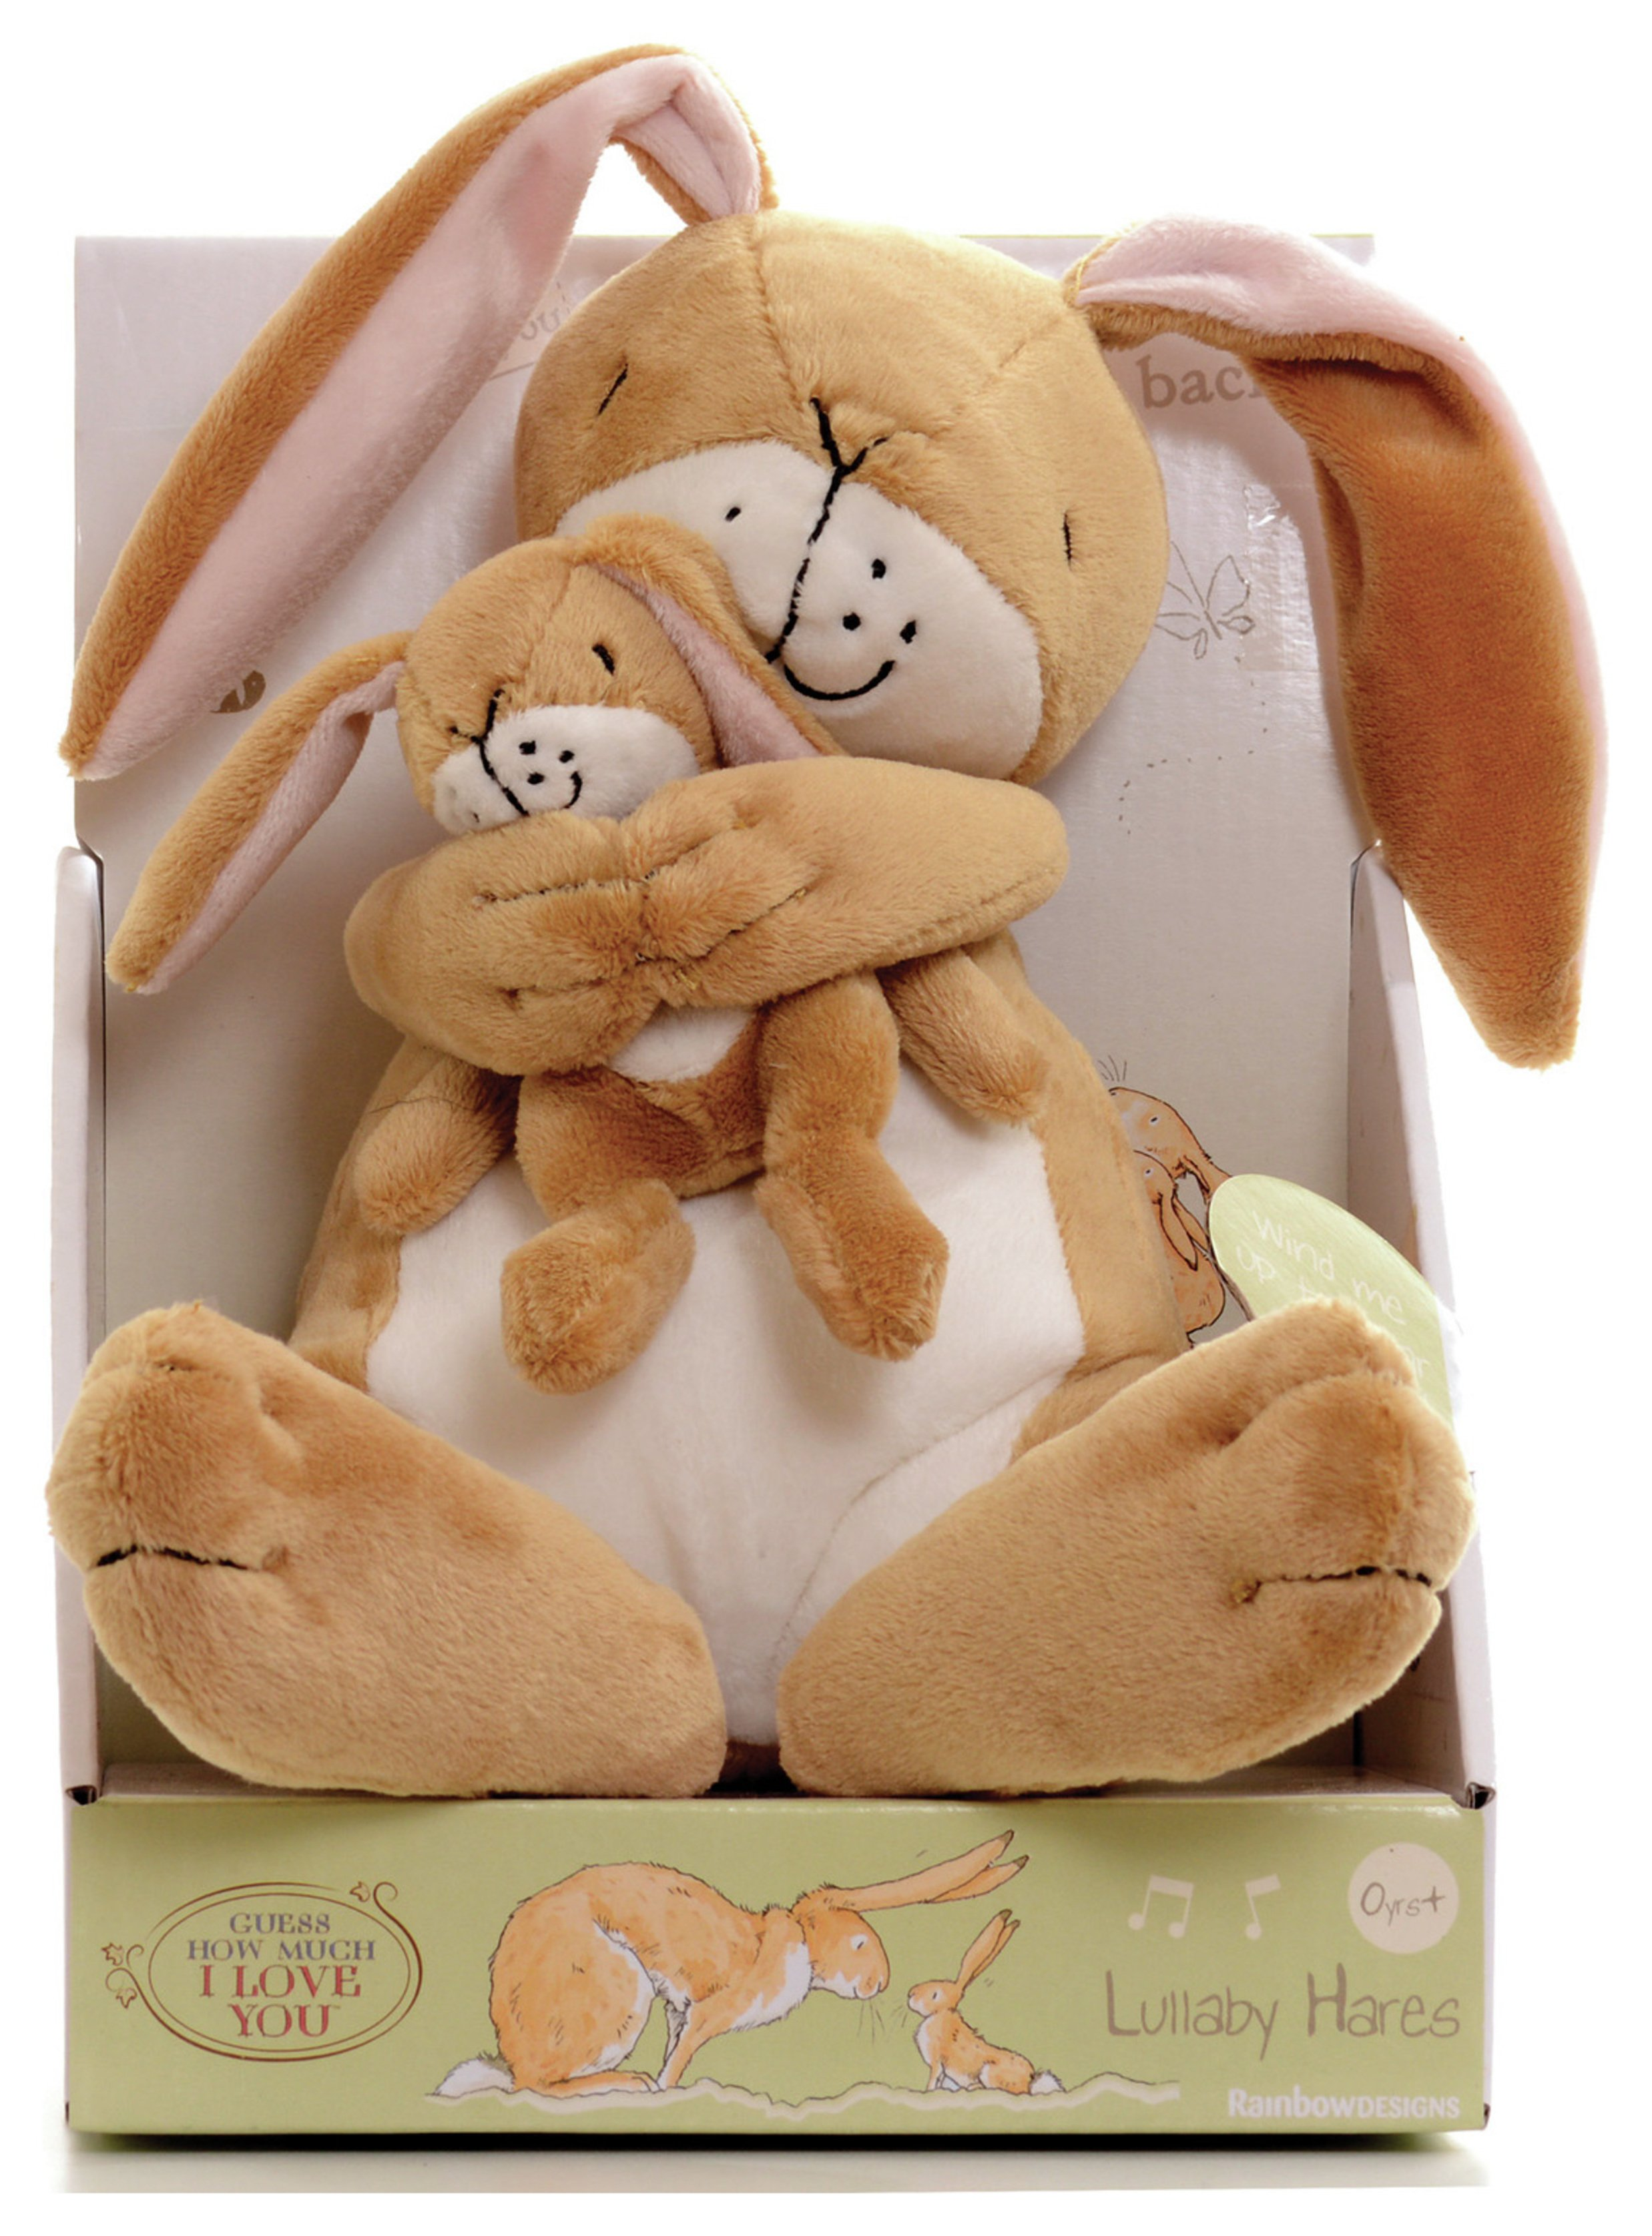 Image of Guess How Much I Love You - Lullaby Hare